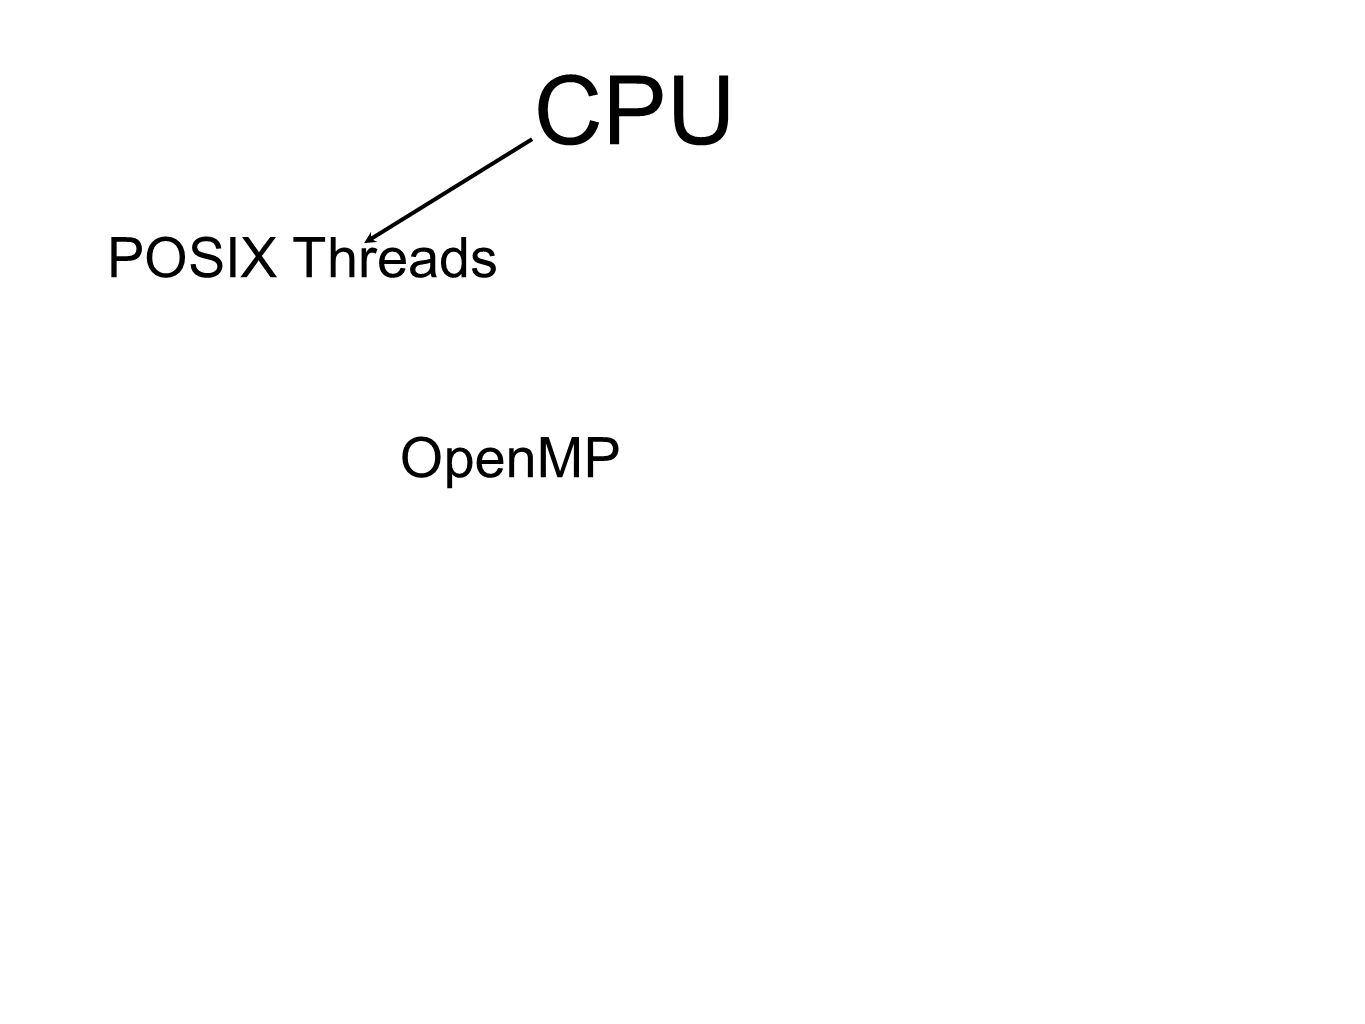 POSIX Threads, or Pthreads, is a POSIX standard for threads.